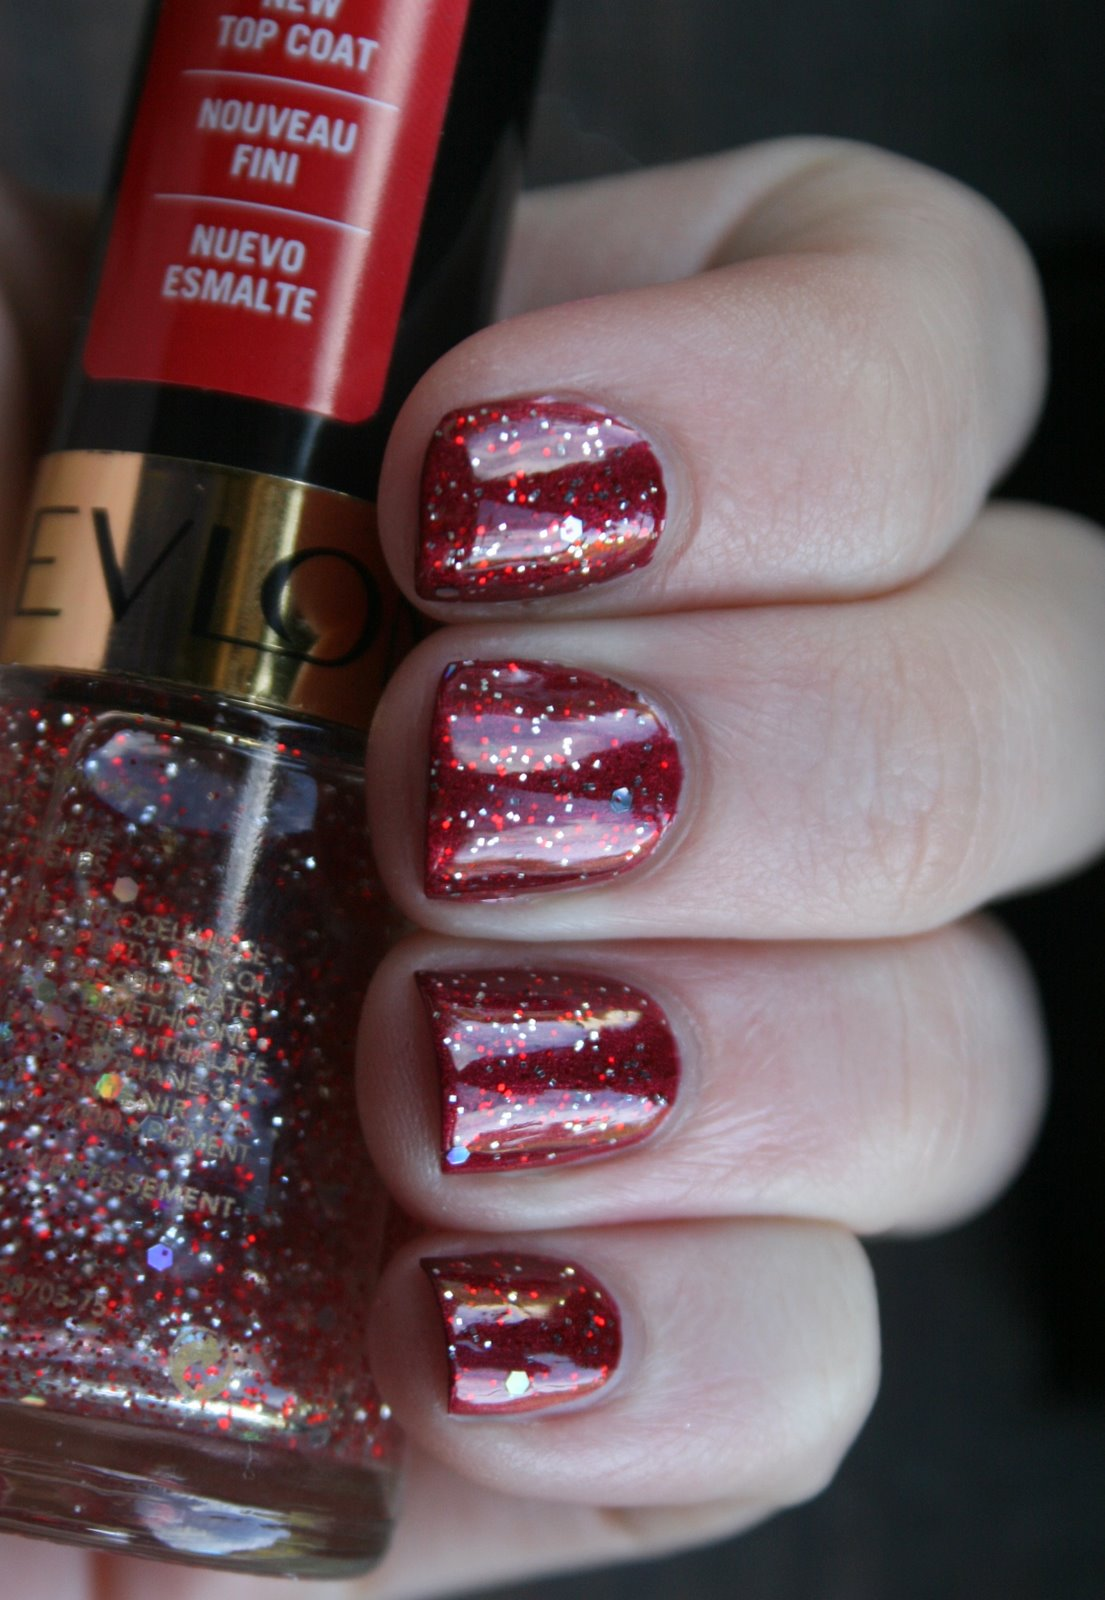 Revlon Slipper over Maybelline Racing Rubies